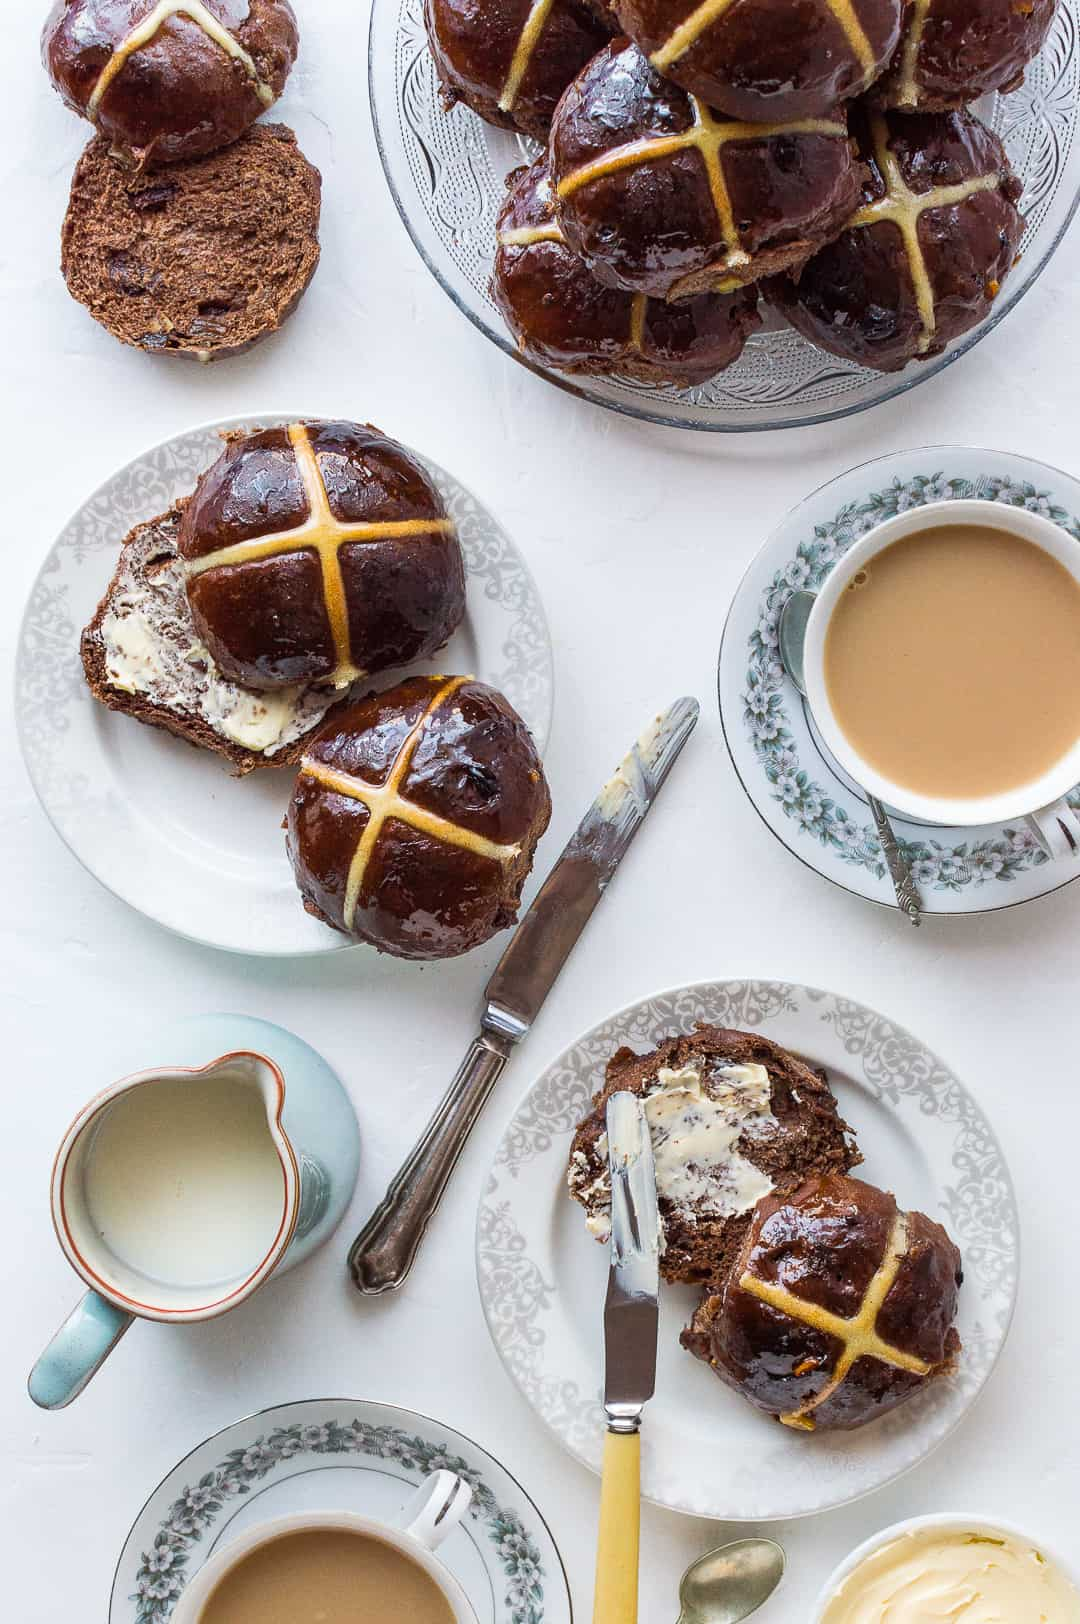 Chocolate orange hot cross buns on a white surface with butter and cups of tea.